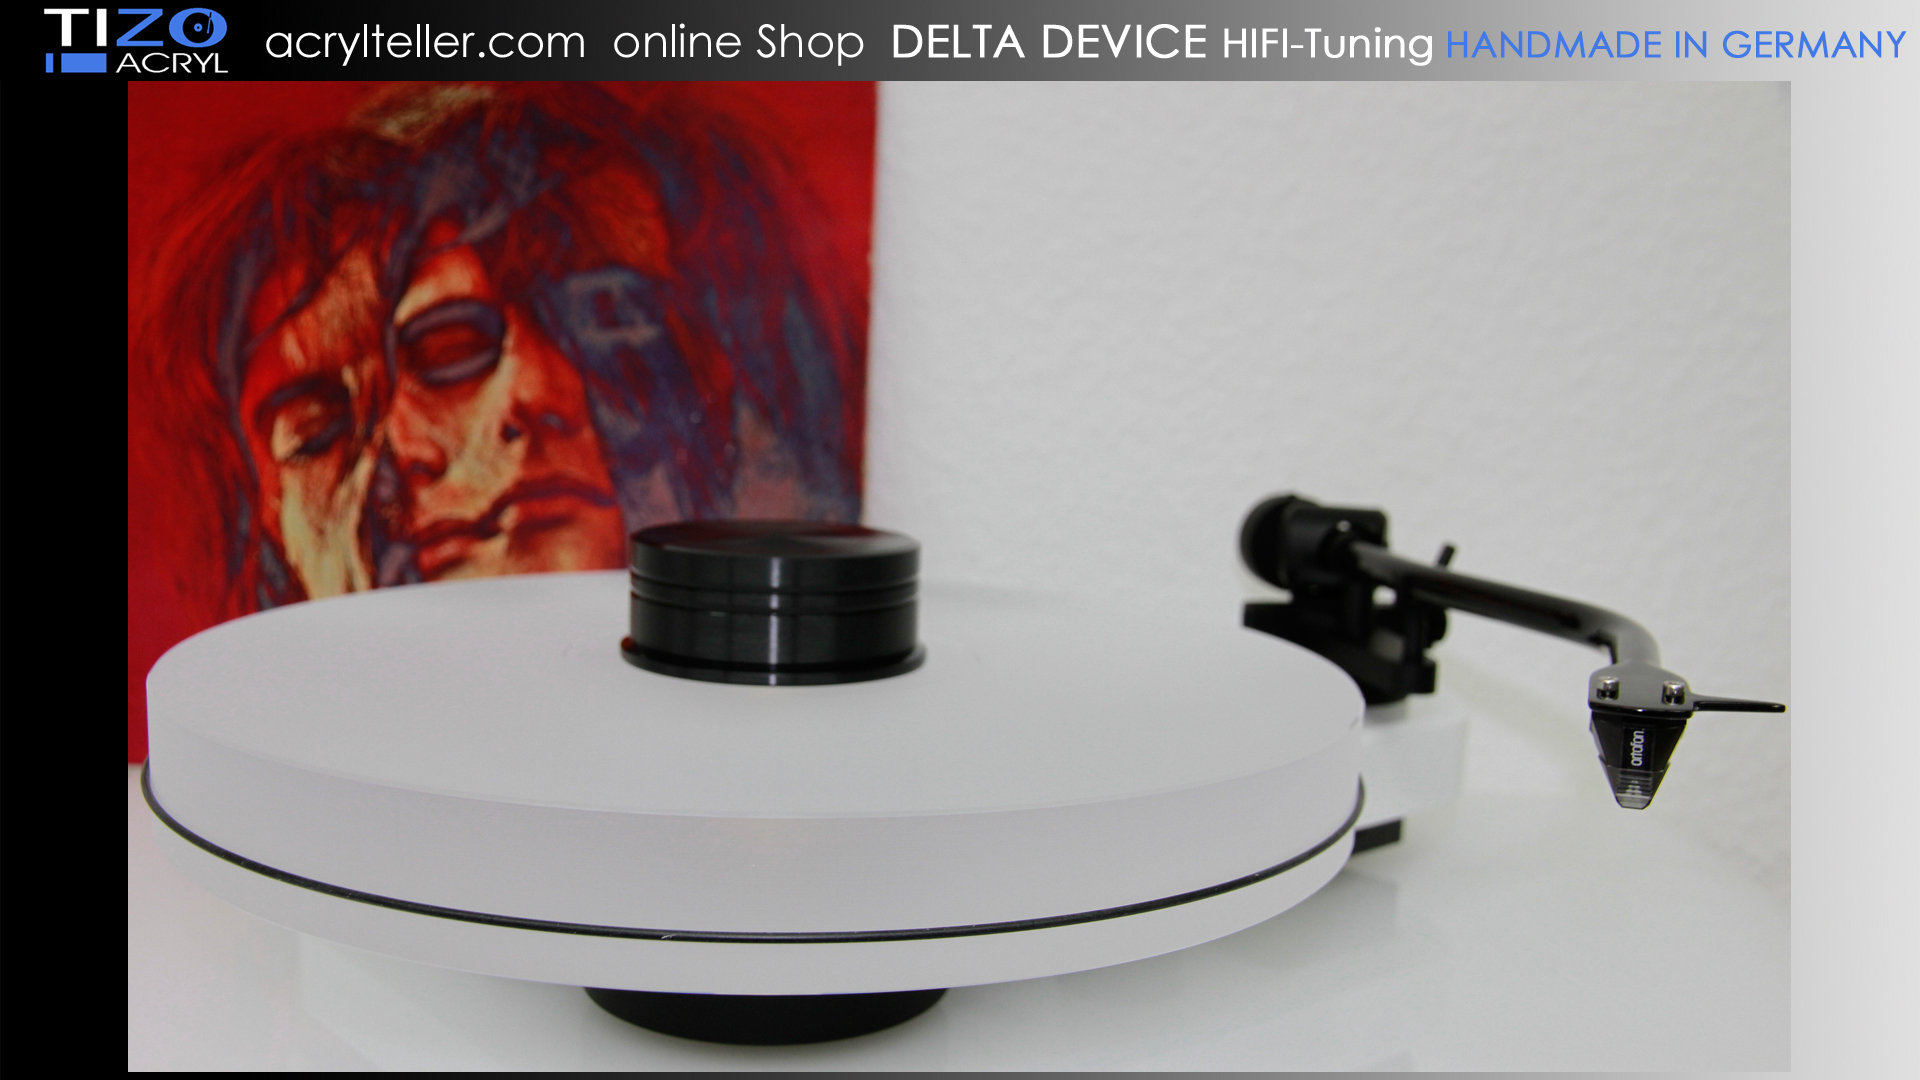 PRO-JECT RPM 3 CARBON turntable + DELTA DEVICE UPGRADE | chassis: white